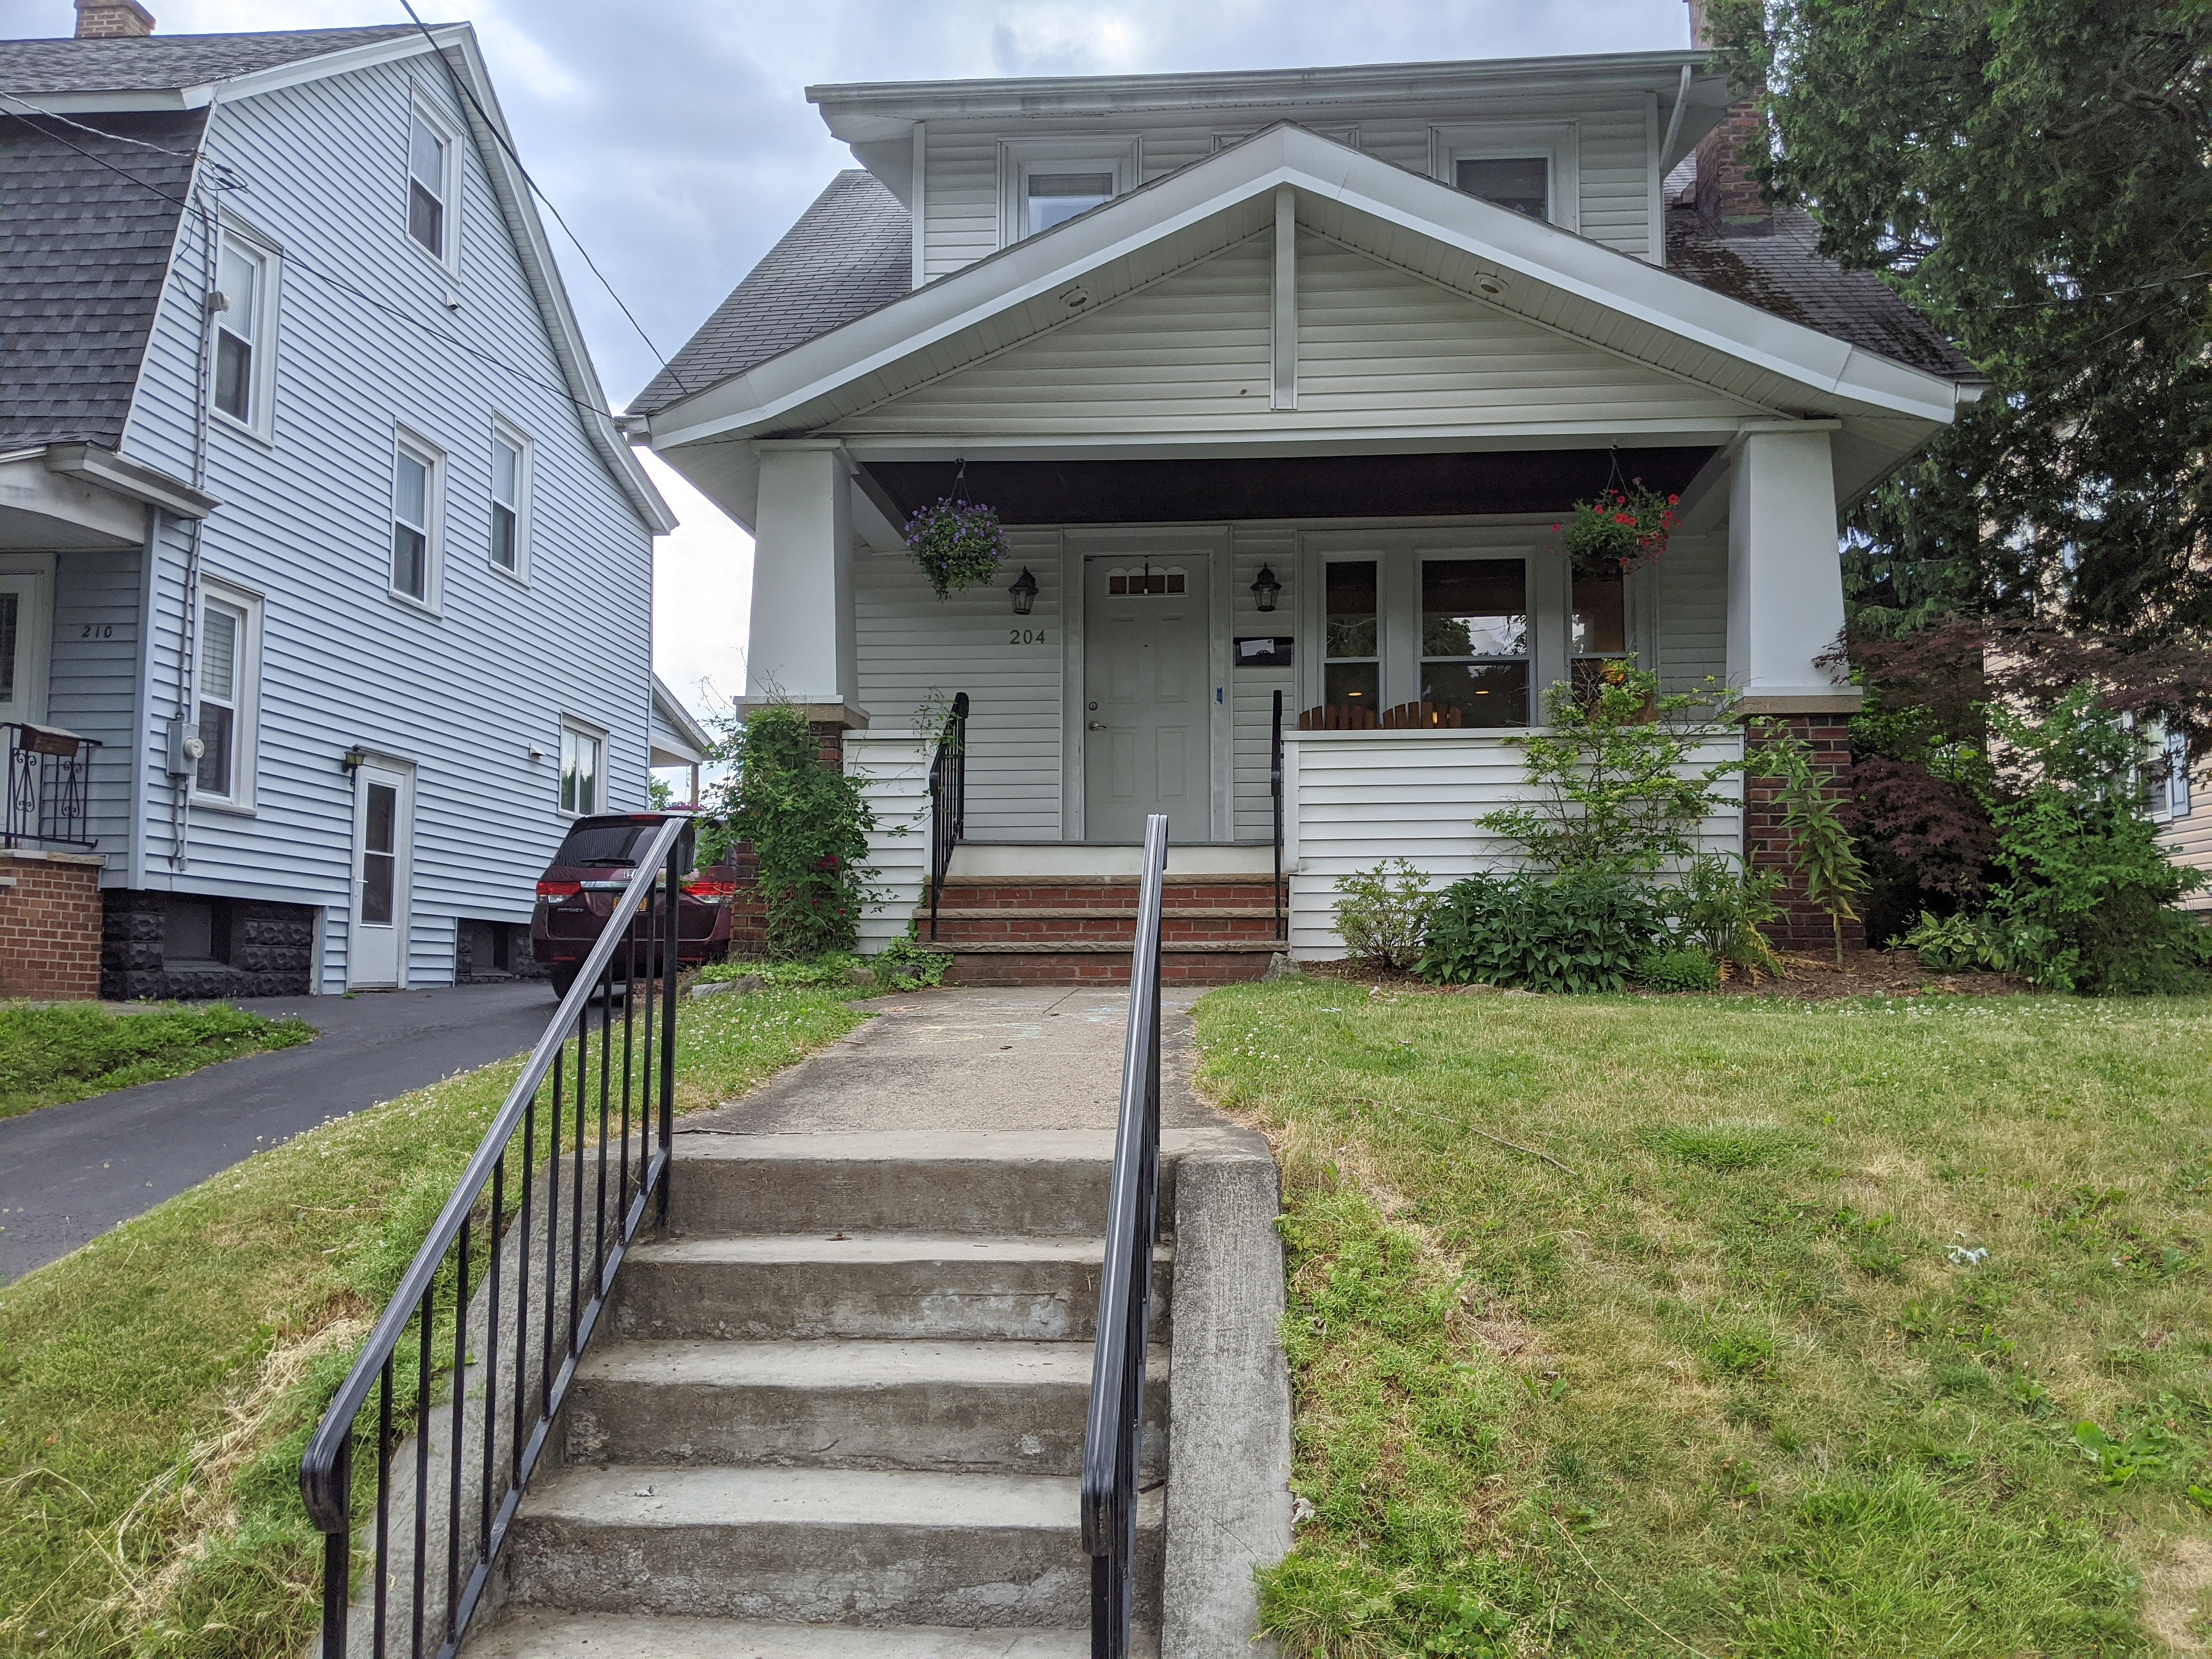 3 Bedrooms / 2 Bathrooms - Est. $1,061.00 / Month* for rent in Syracuse, NY